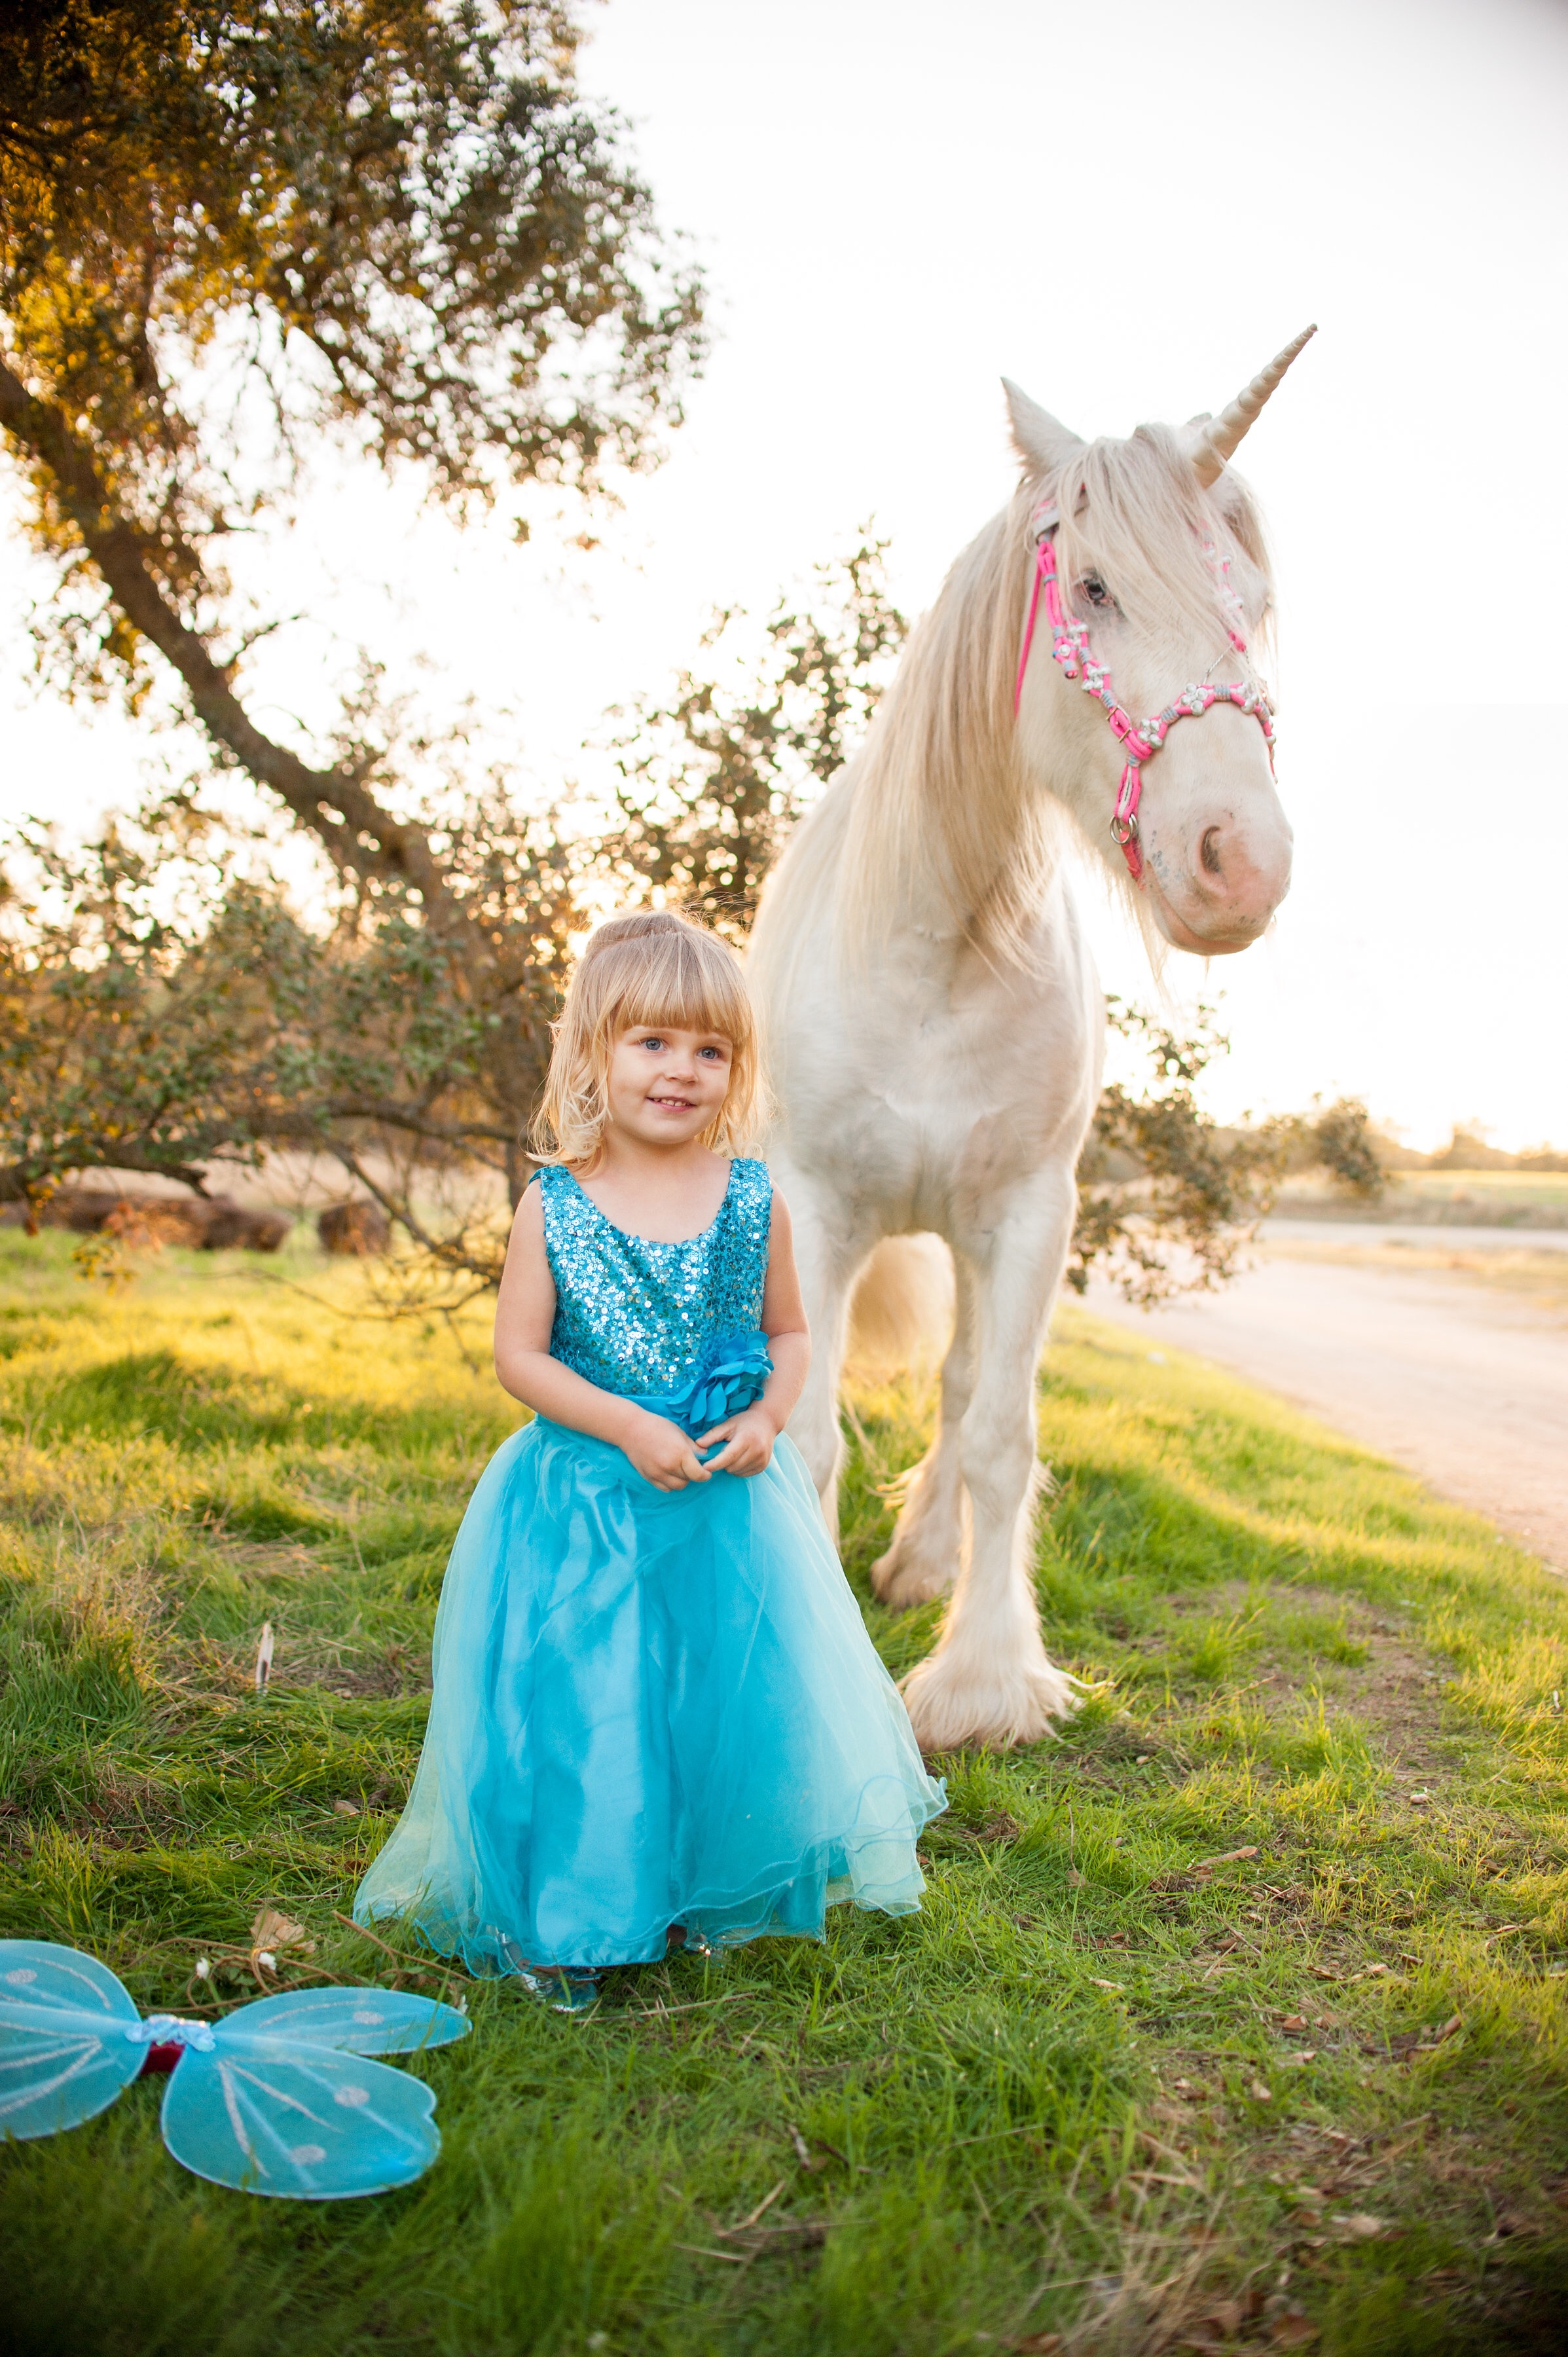 Toddler dressed as a fairy princess smiles alongside a unicorn in a magical photoshoot in Creston, California.